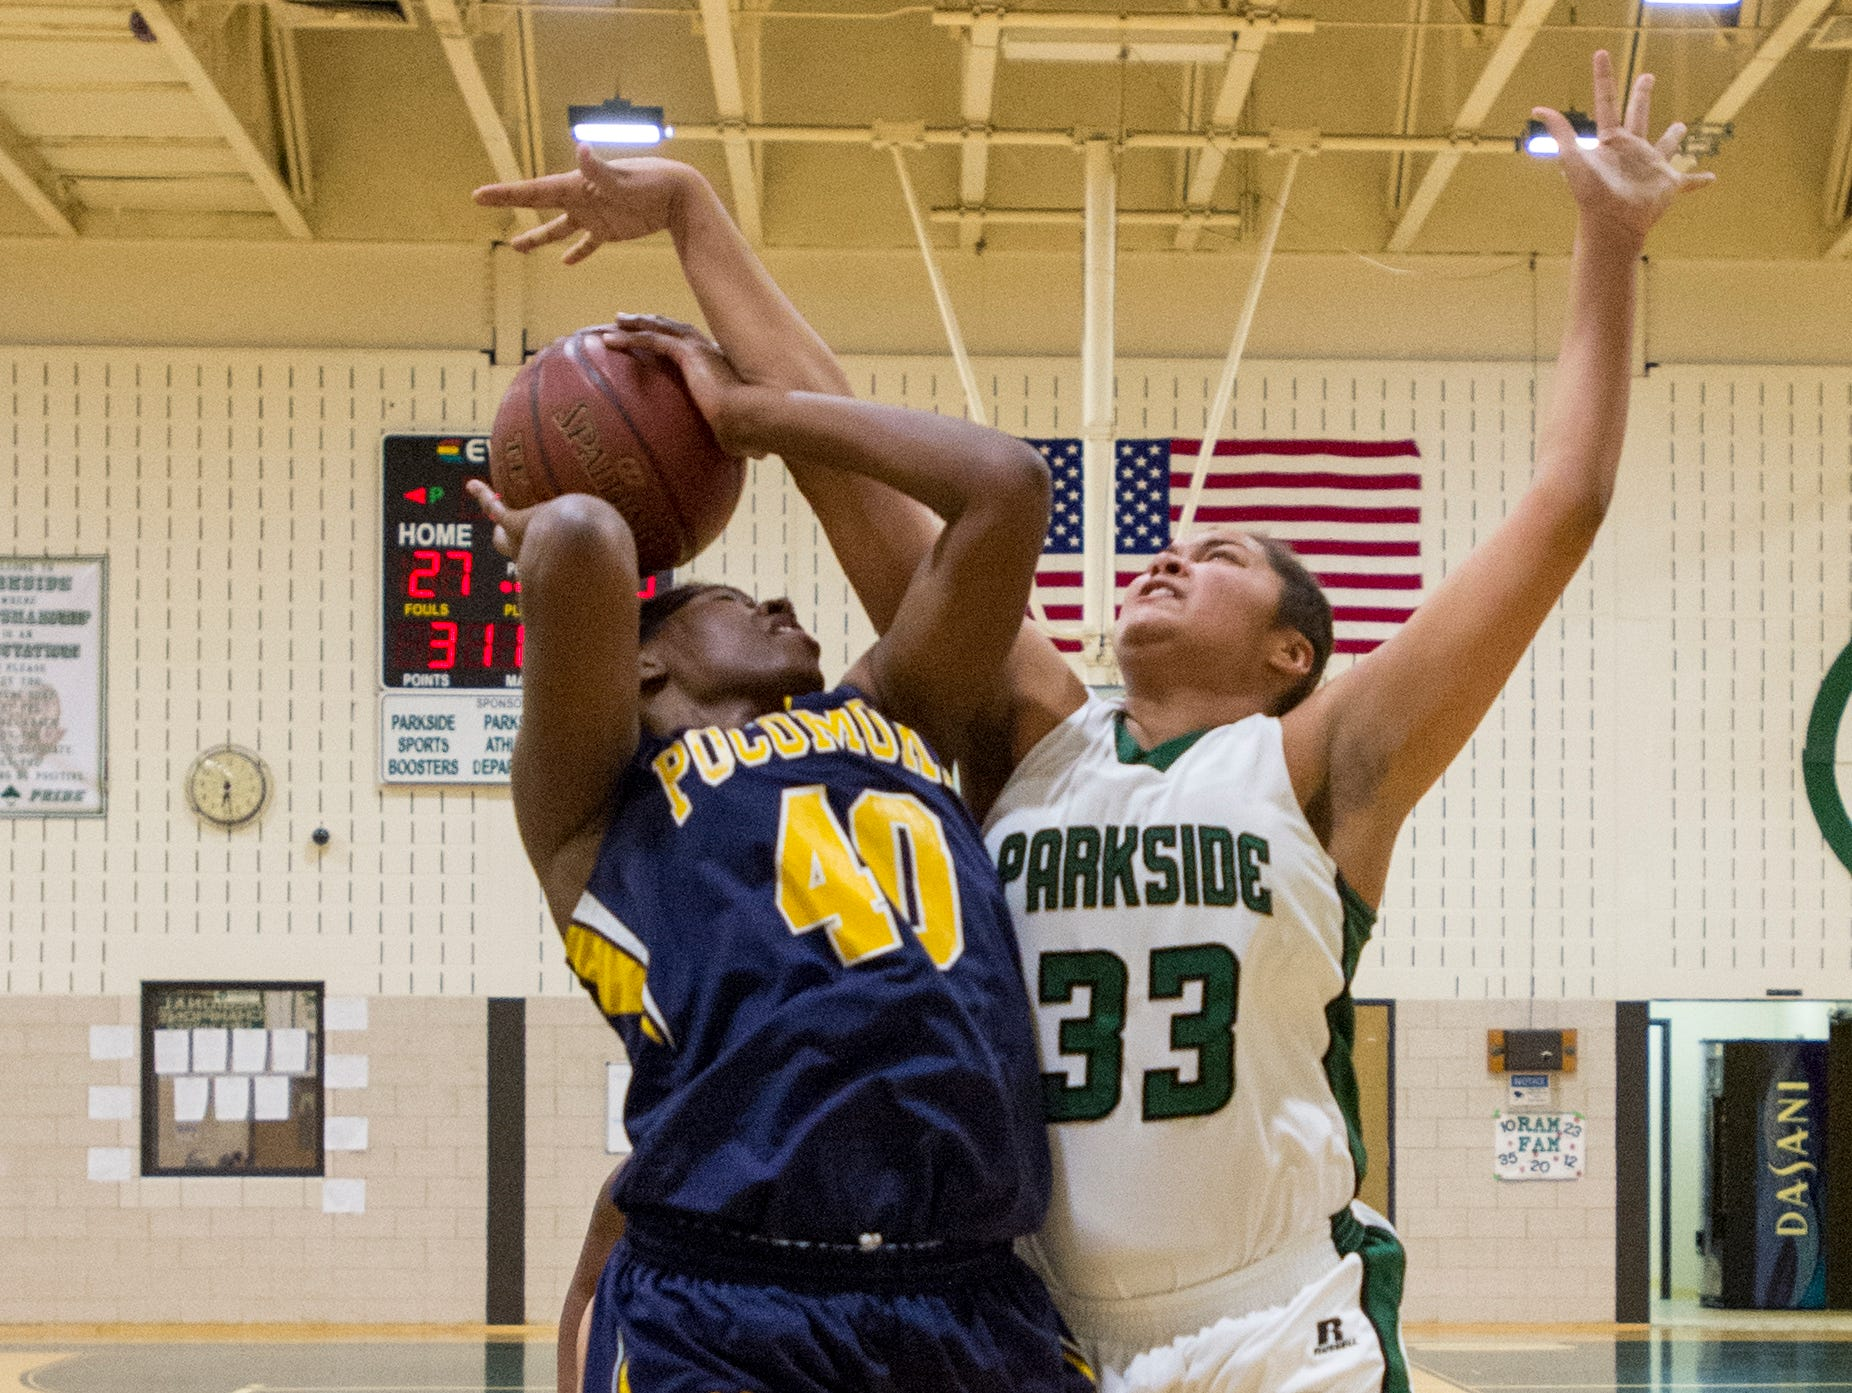 Pocomoke's Dynaisha Christian (40), left, goes up for a shot as Parkside's Kayla Handy (33) blocks during their game at Parkside Tuesday.